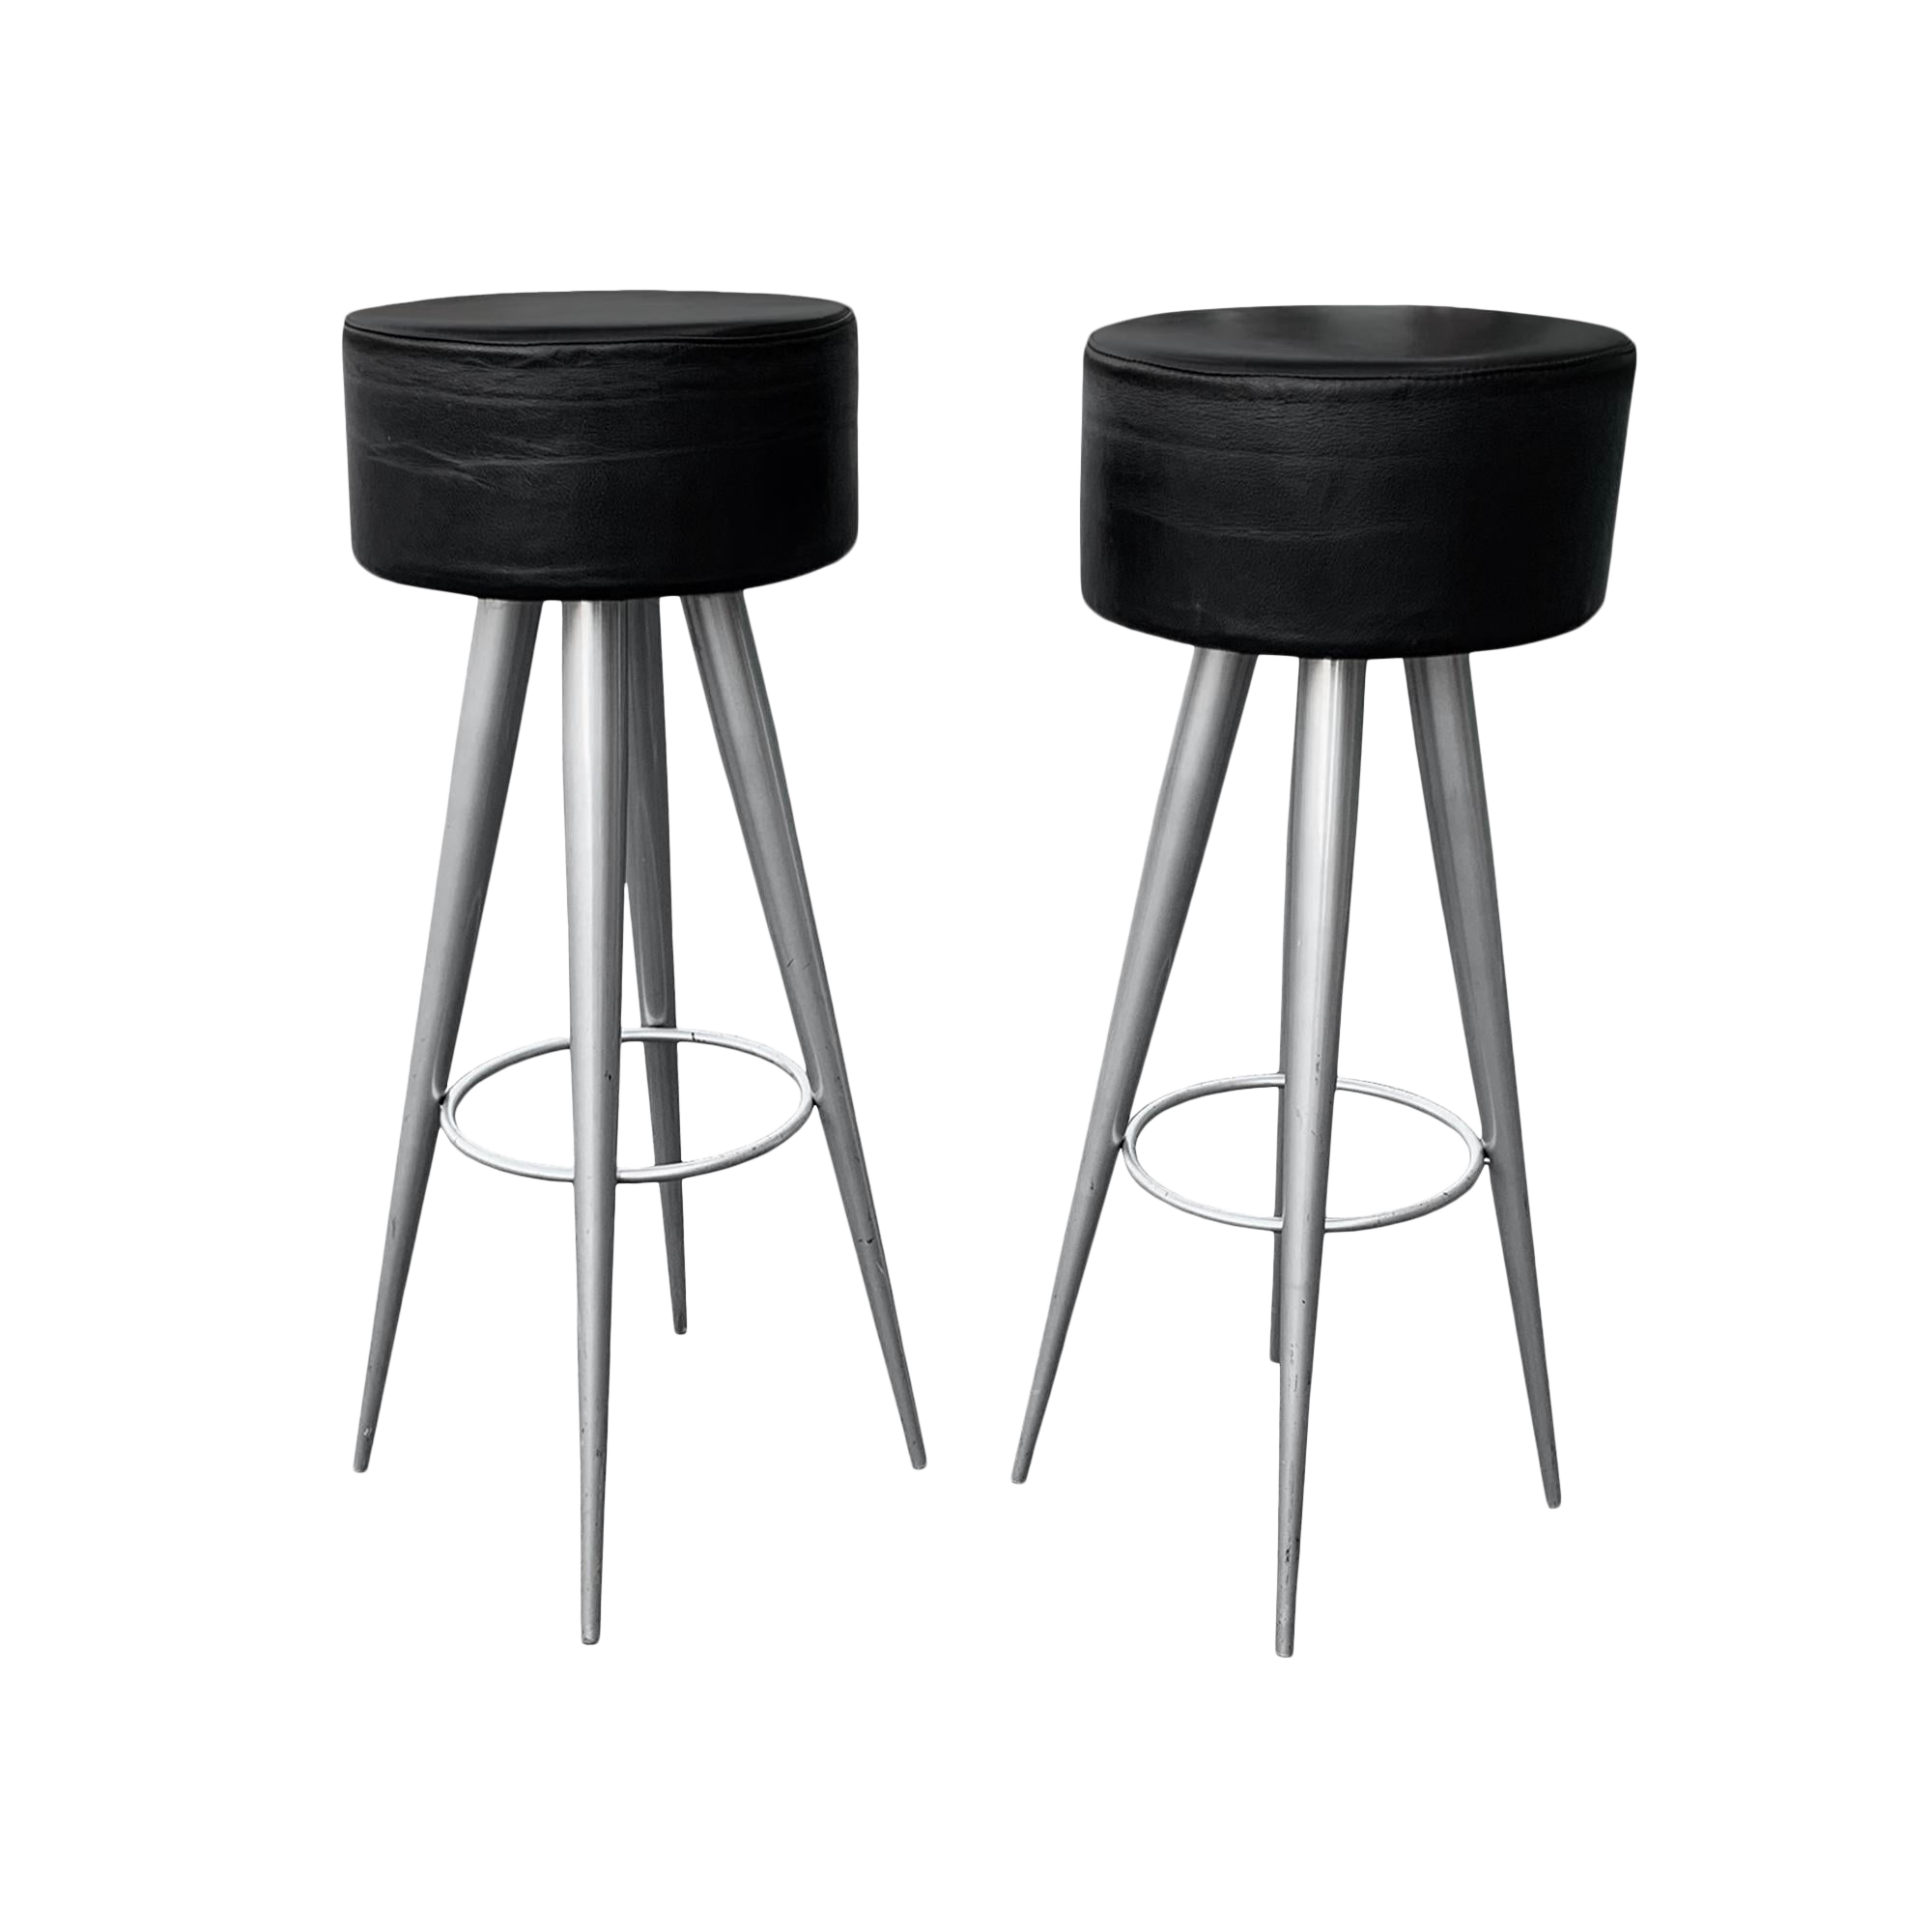 Stupendous Modern Black Leather Bar Stools Made In Italy Gmtry Best Dining Table And Chair Ideas Images Gmtryco